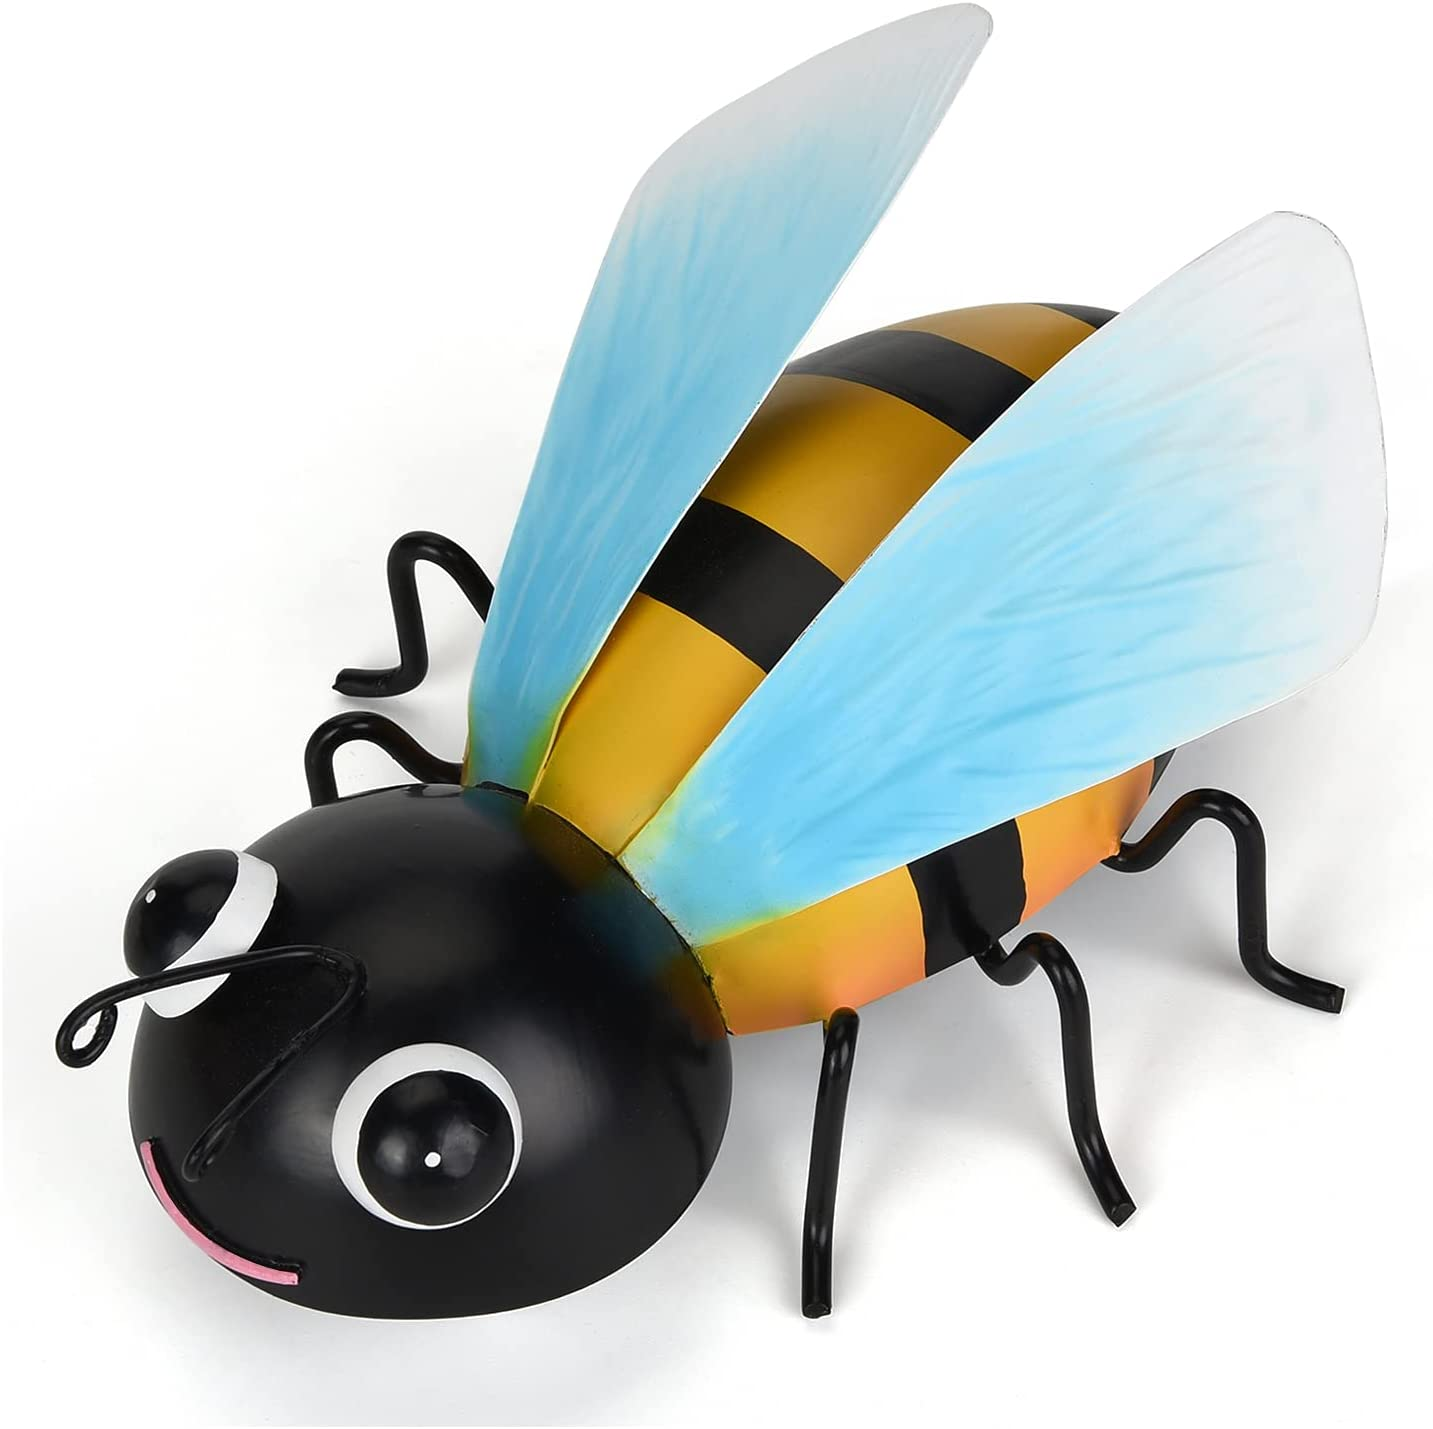 Metal Bee Wall Art Decor 3D Sculpture Hanging Decorative Metal Bumble Bee Ornament for Indoor Outdoor Garden Yard Porch Patio Lawn Fence Home Decorations Gift 6.3